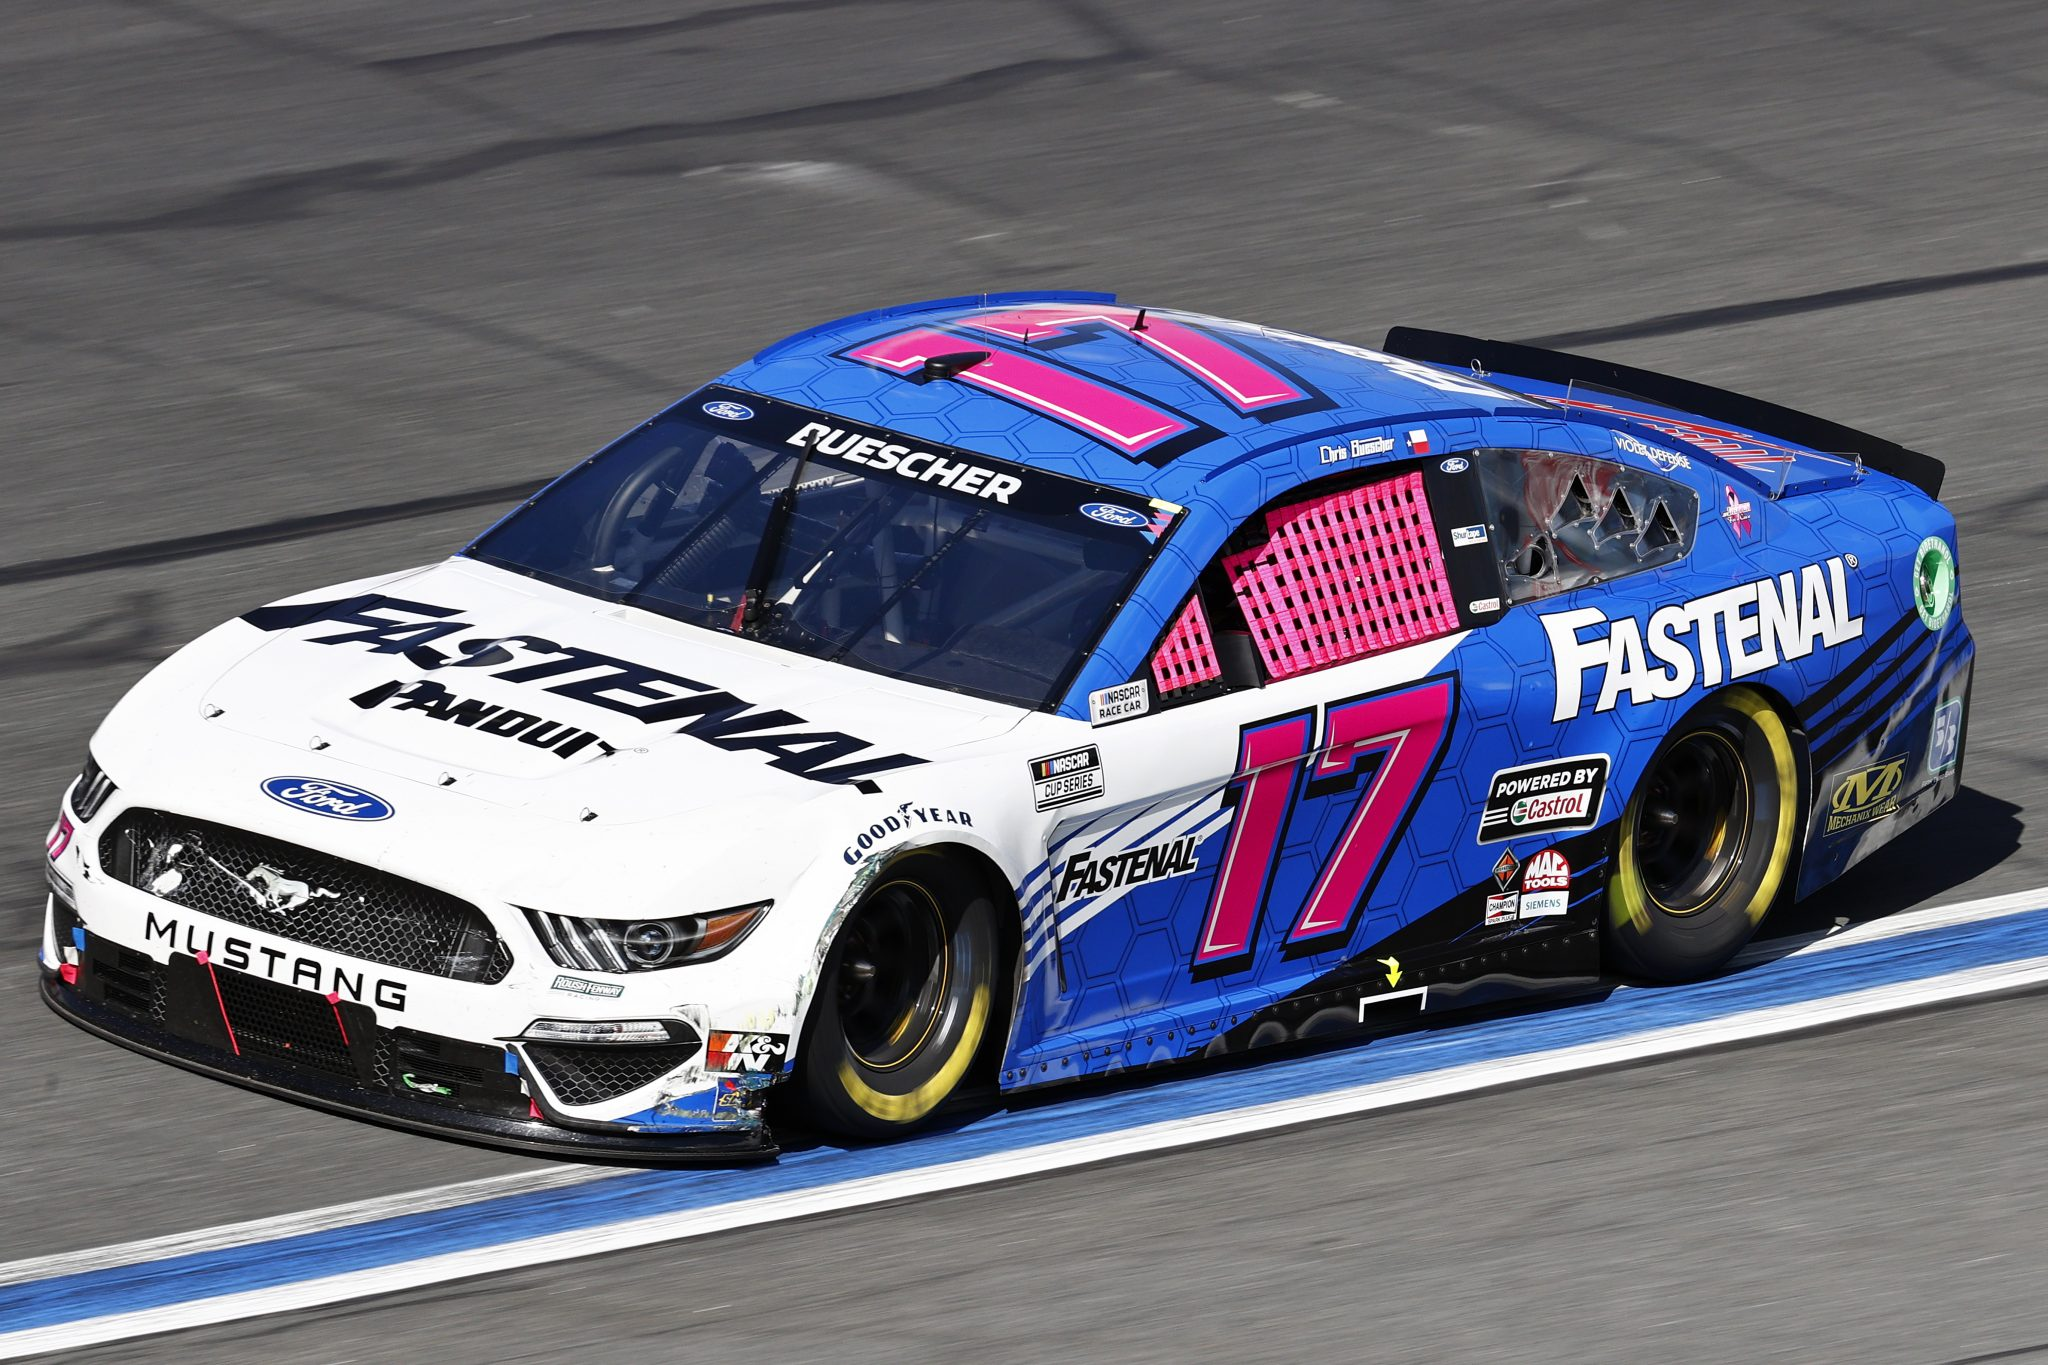 CONCORD, NORTH CAROLINA - OCTOBER 10: Chris Buescher, driver of the #17 Fastenal Ford, drives during the NASCAR Cup Series Bank of America ROVAL 400 at Charlotte Motor Speedway on October 10, 2021 in Concord, North Carolina. (Photo by Jared C. Tilton/Getty Images) | Getty Images